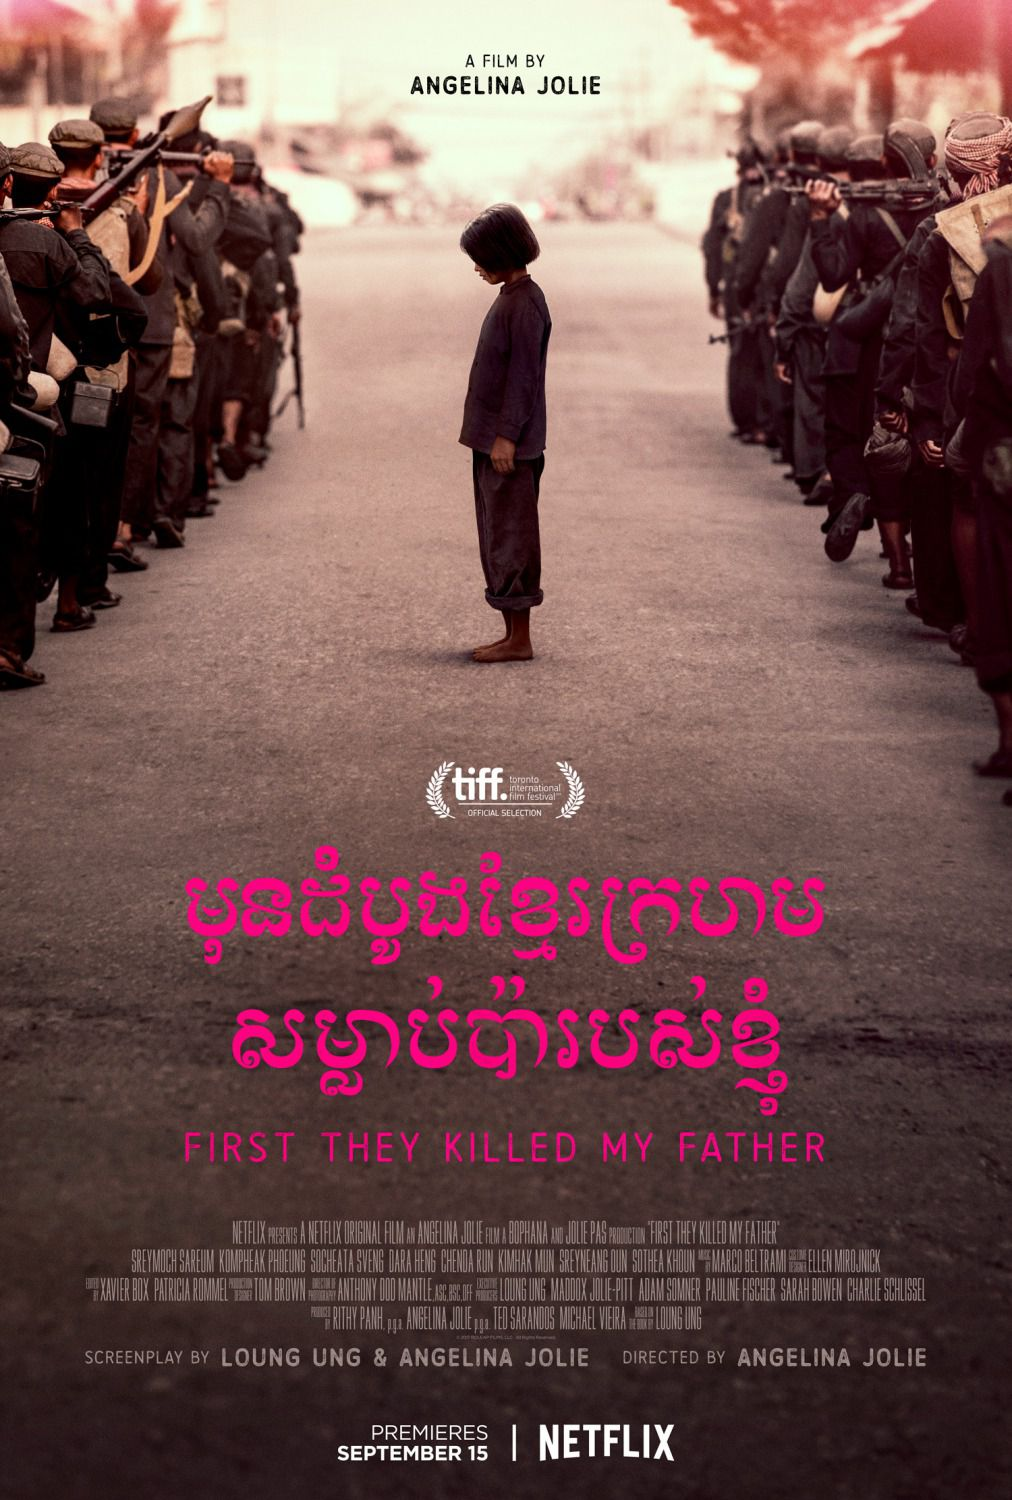 First they Killed my Father - a Daughter of Cambodia Remembers - a film by Angelina Jolie